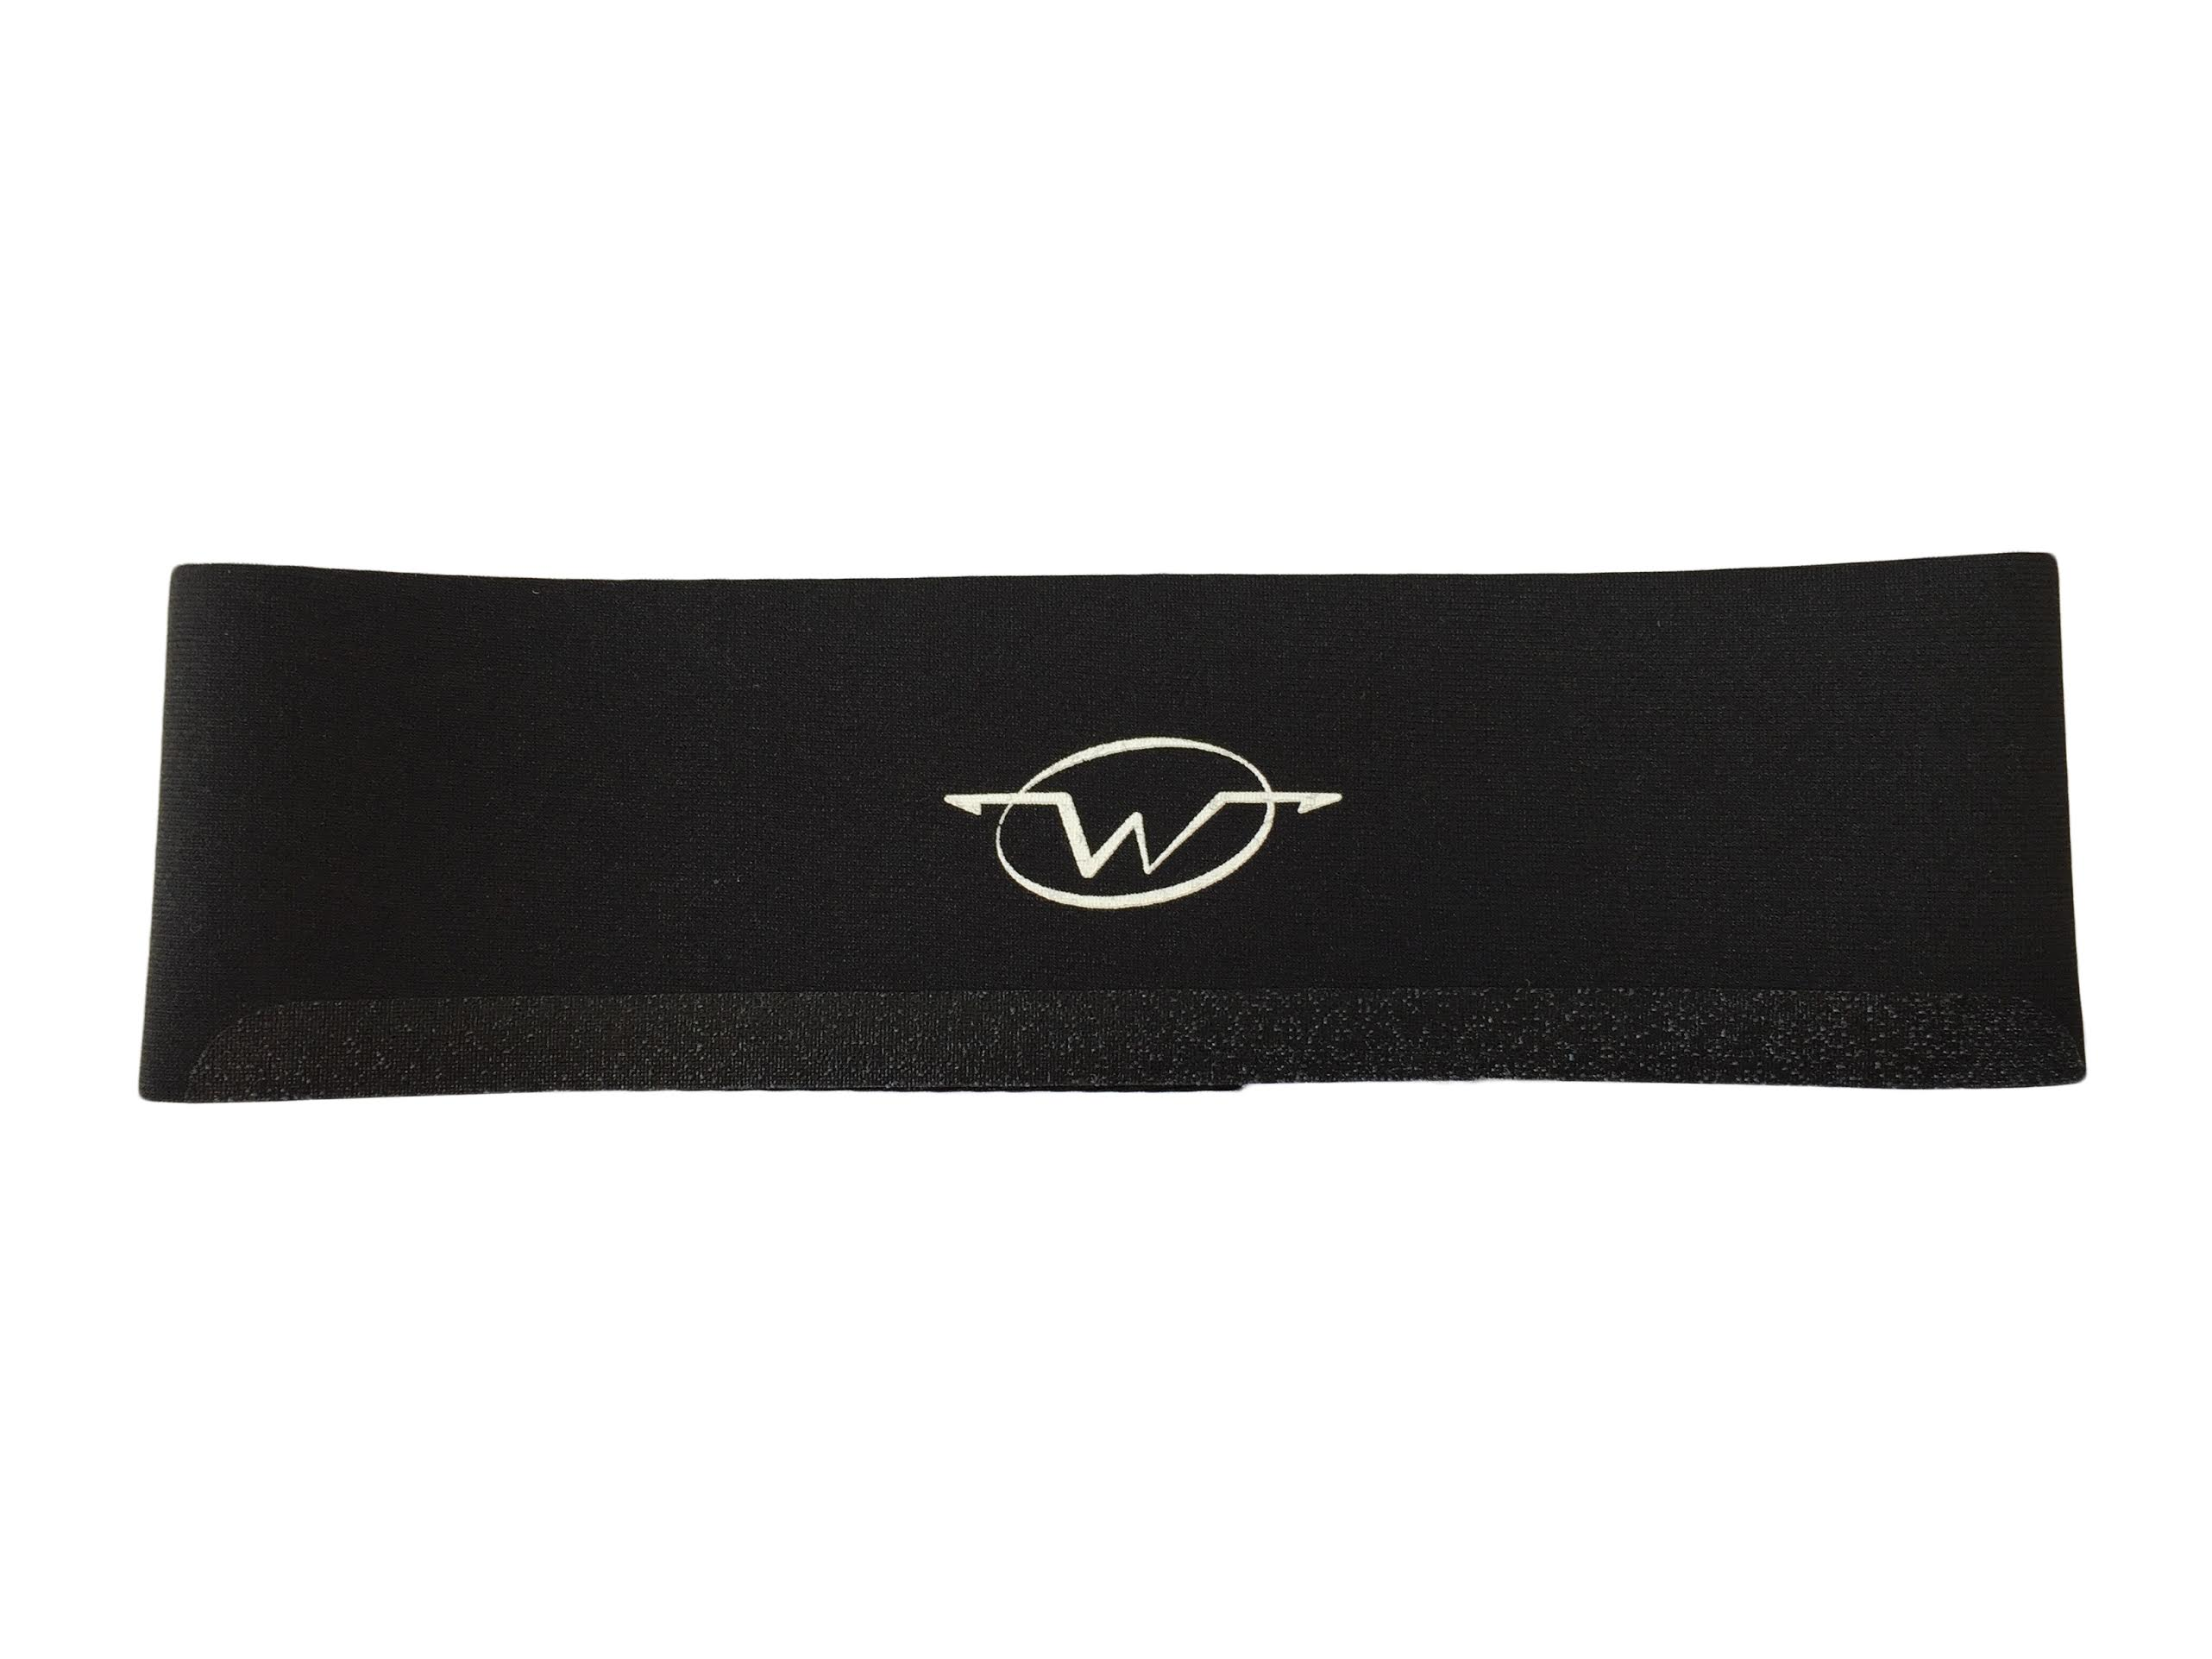 Black performance headband by Wickflow